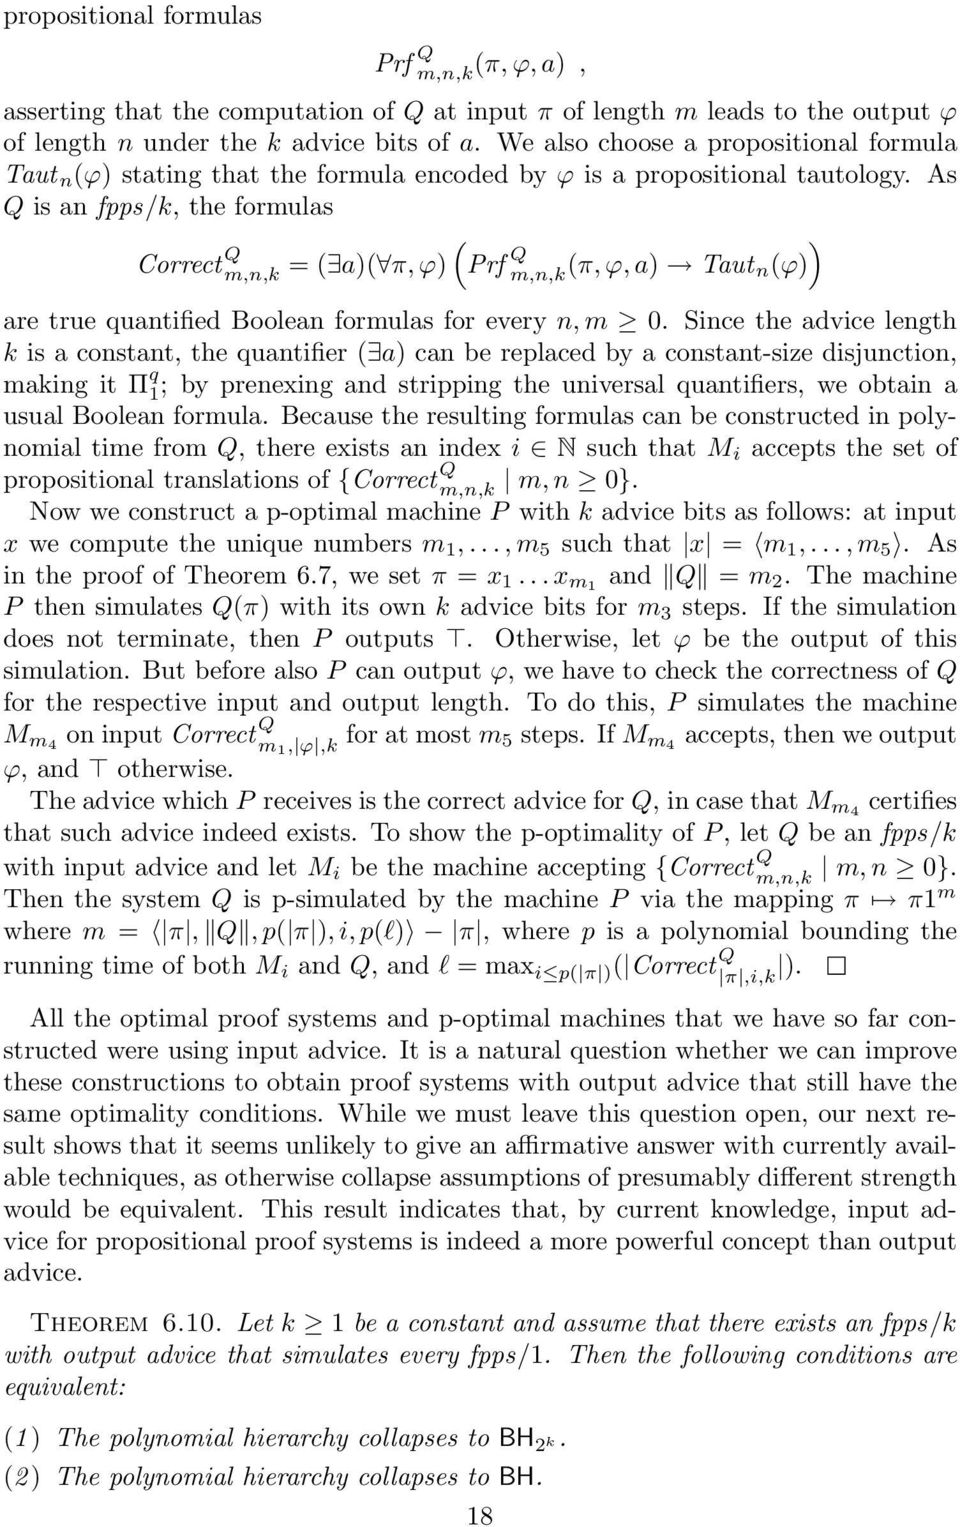 As Q is an fpps/k, the formulas ) Correct Q m,n,k (Prf = ( a)( π, ϕ) Q m,n,k (π, ϕ, a) Taut n(ϕ) are true quantified Boolean formulas for every n, m 0.